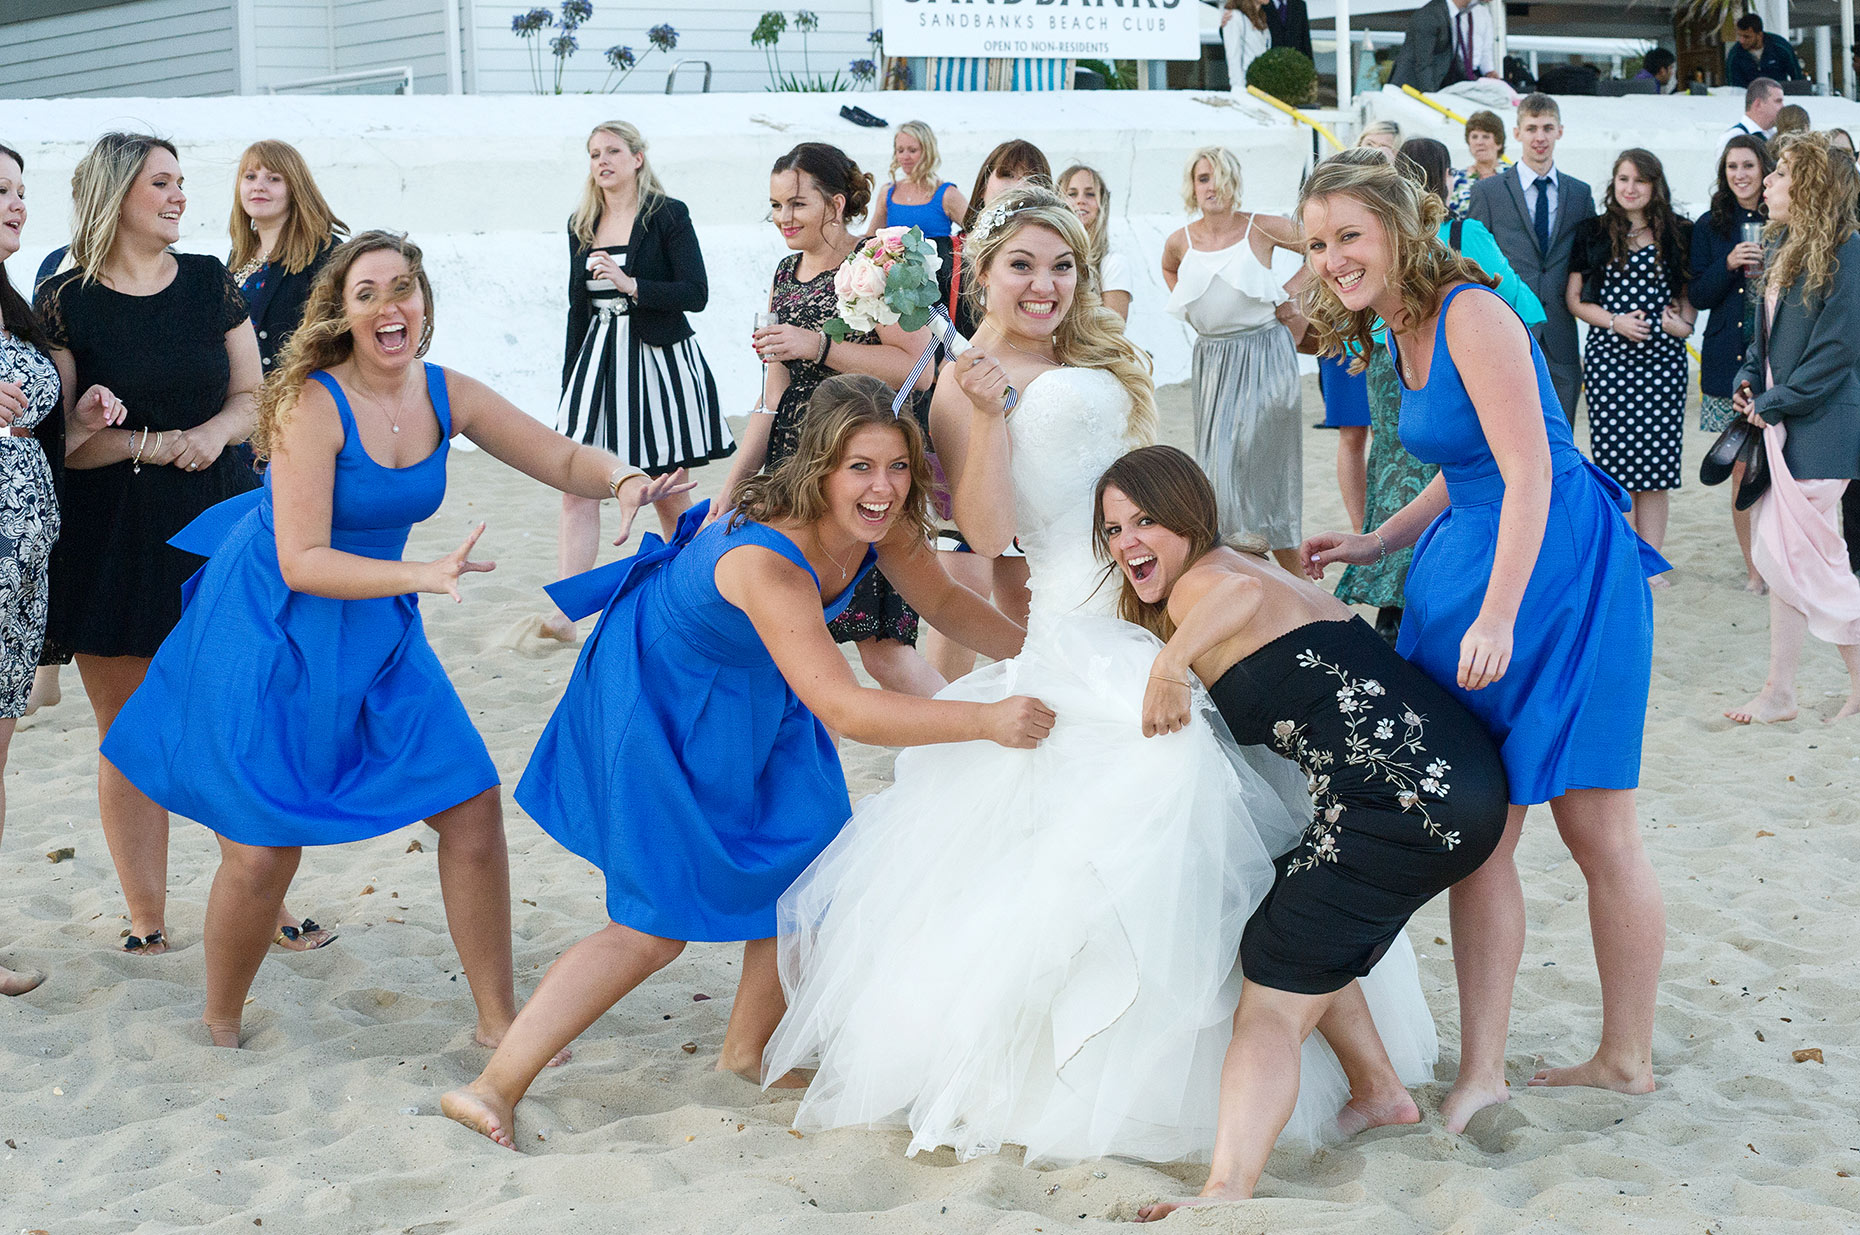 146Wedding-Reception-The-Sandbanks-Hotel-Poole